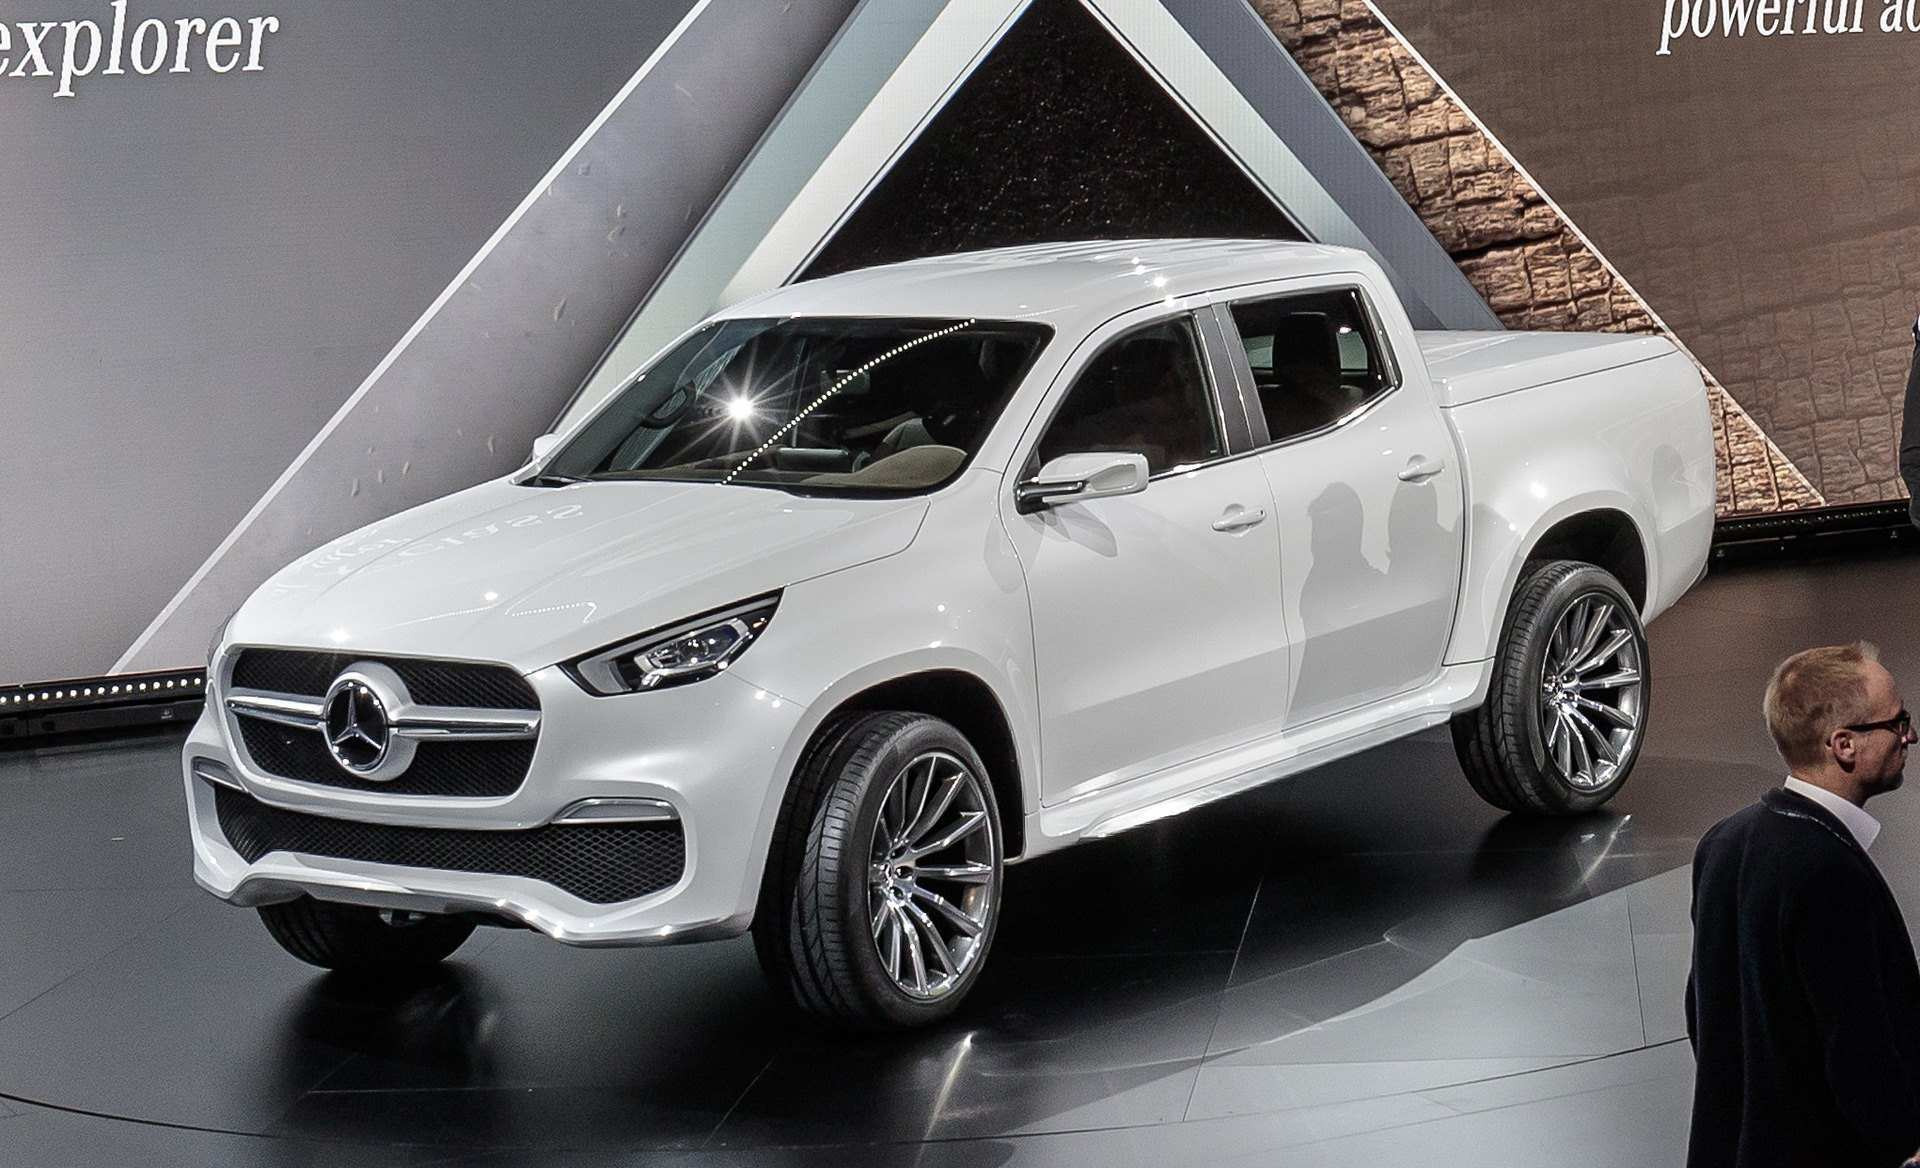 23 Concept of 2019 Mercedes Truck Price Price for 2019 Mercedes Truck Price